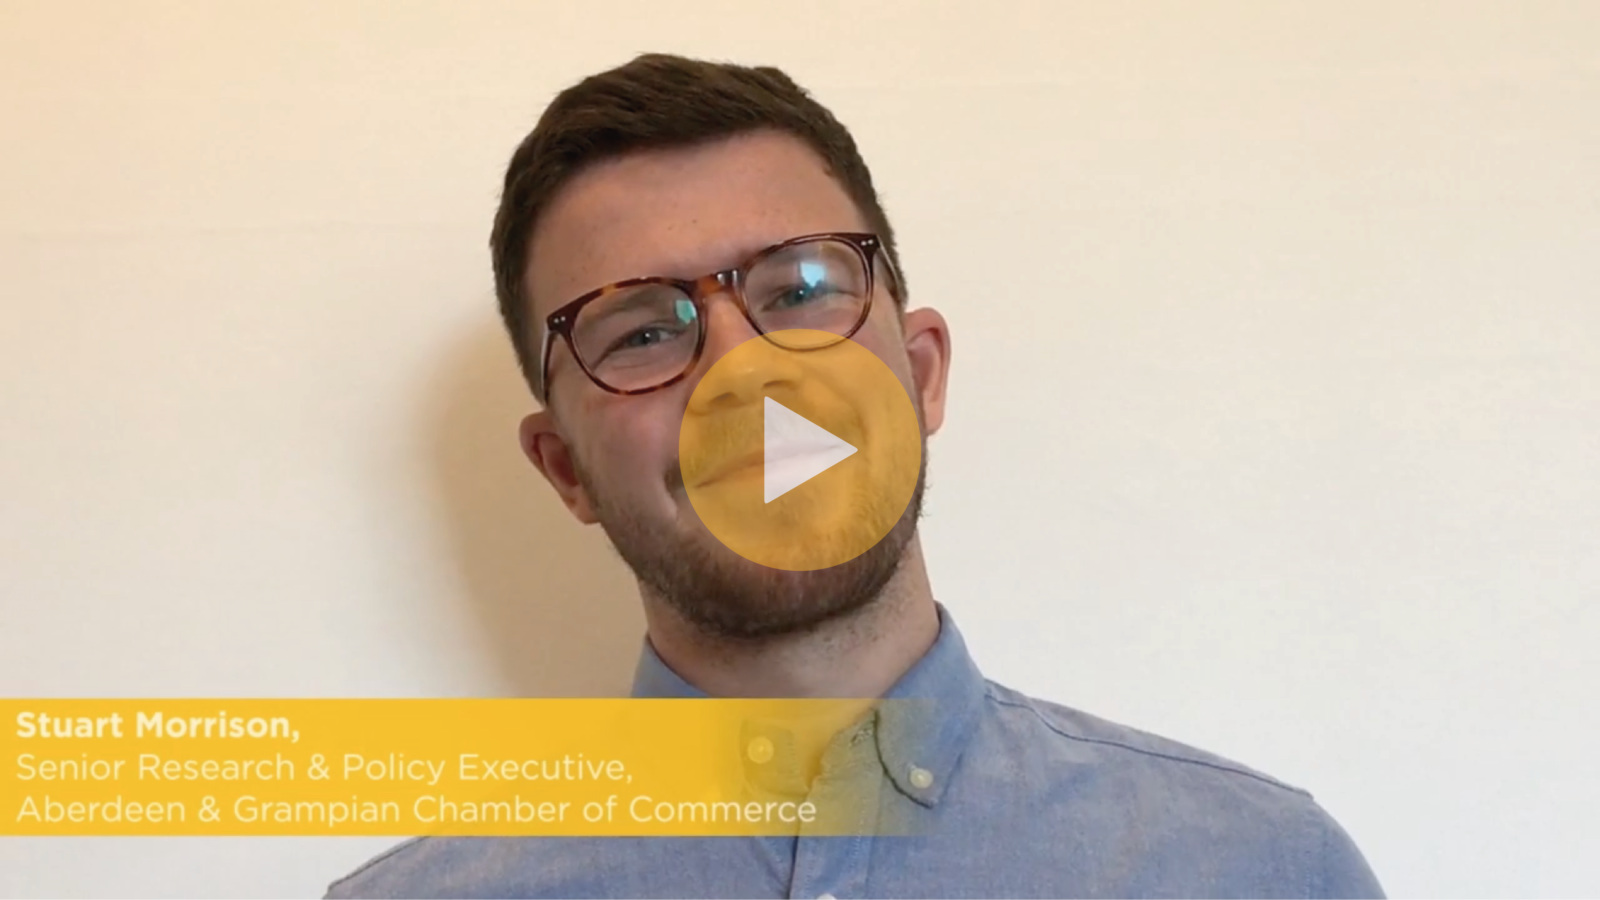 Learn how you can gain invaluable insight in order to get to know your staff again through this latest ChamberTalk video